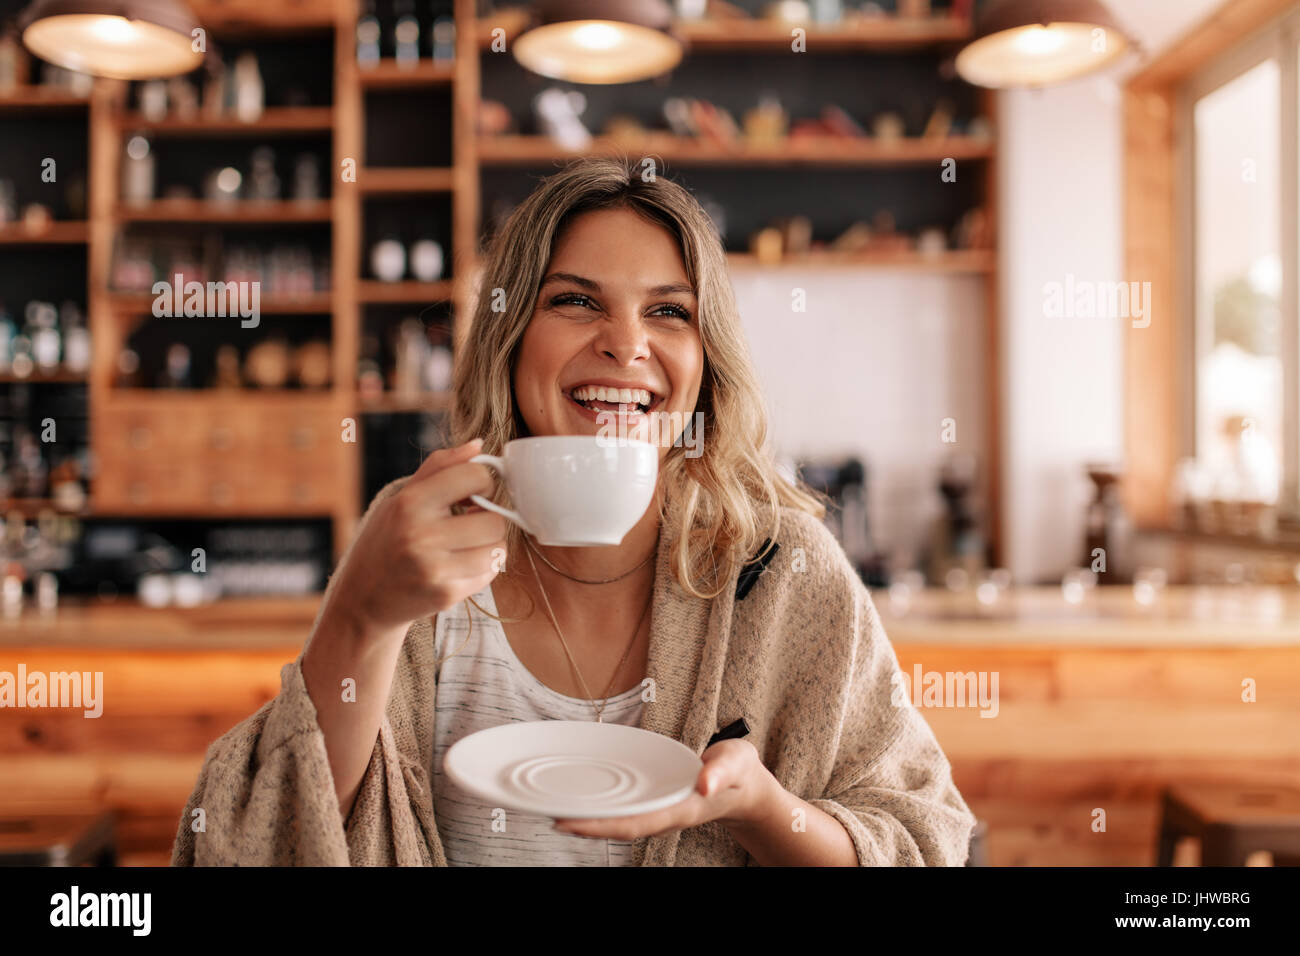 Portrait of beautiful young woman standing in a cafe and drinking coffee. Smiling young female having coffee in - Stock Image